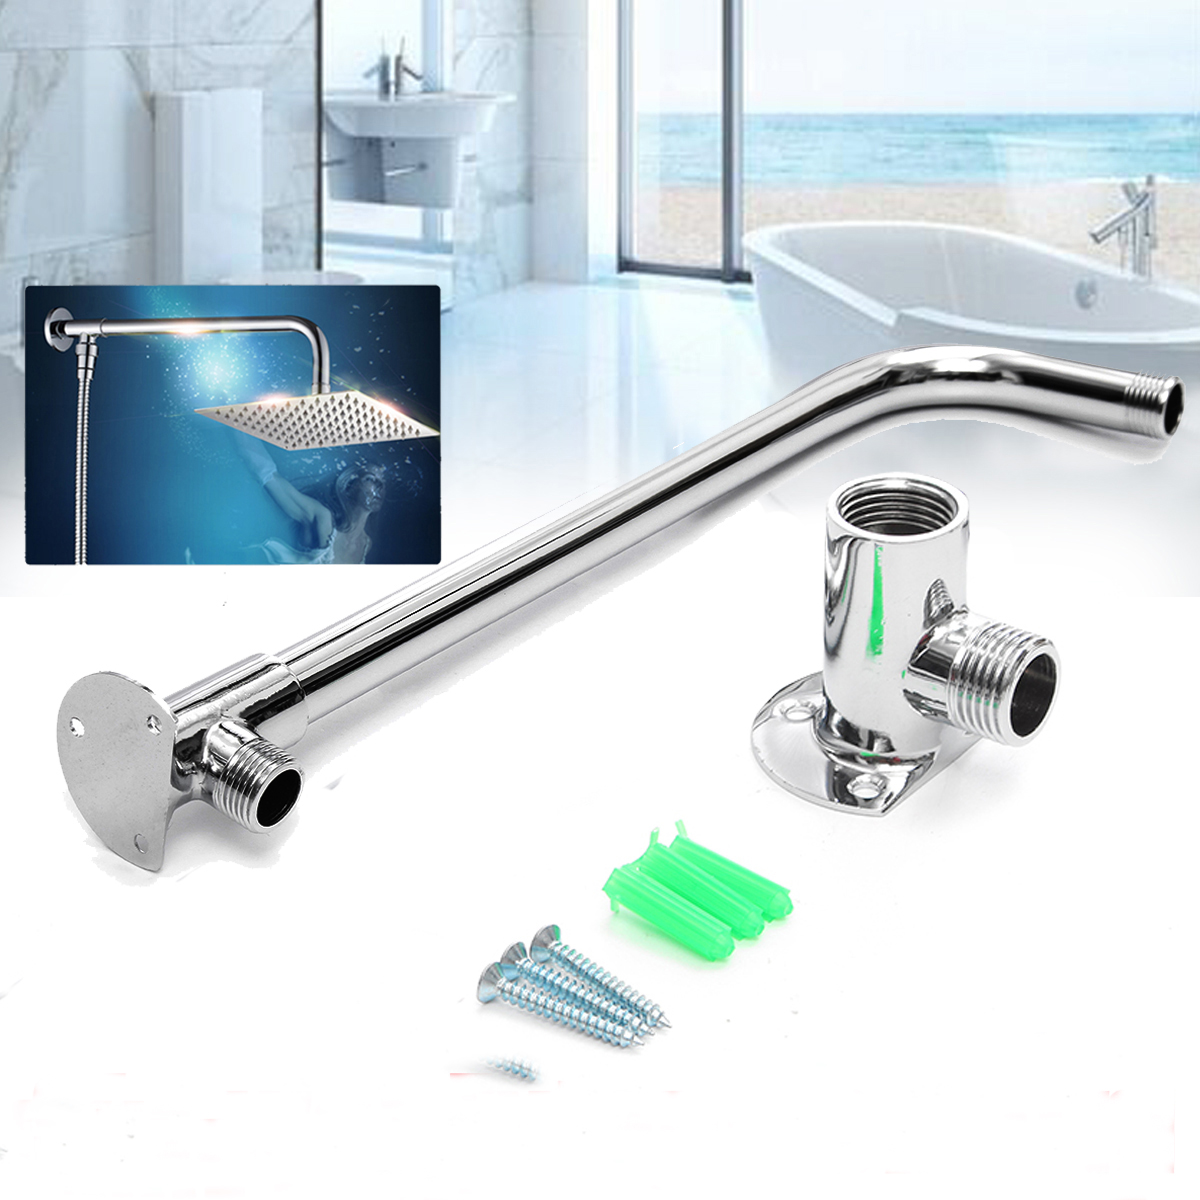 Shower Arm Square Stainless Steel Top Straight Shower Arm Pipe Wall Mount for Bathroom Ceiling Shower Head 30 cm